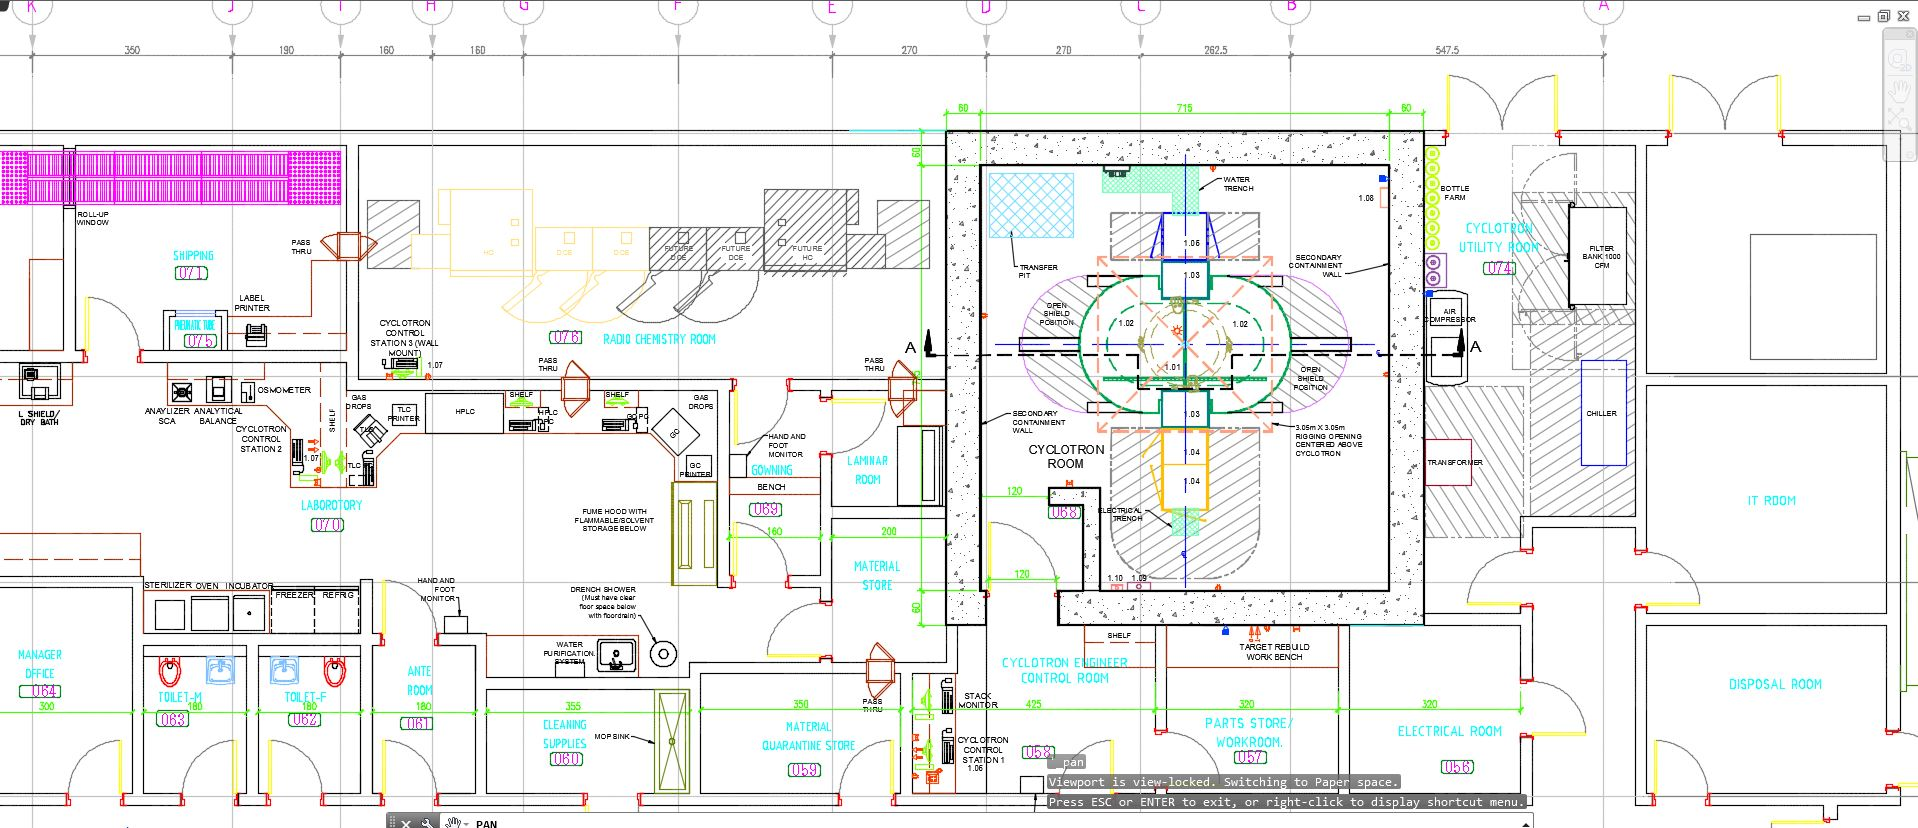 Cyclotron Room Design